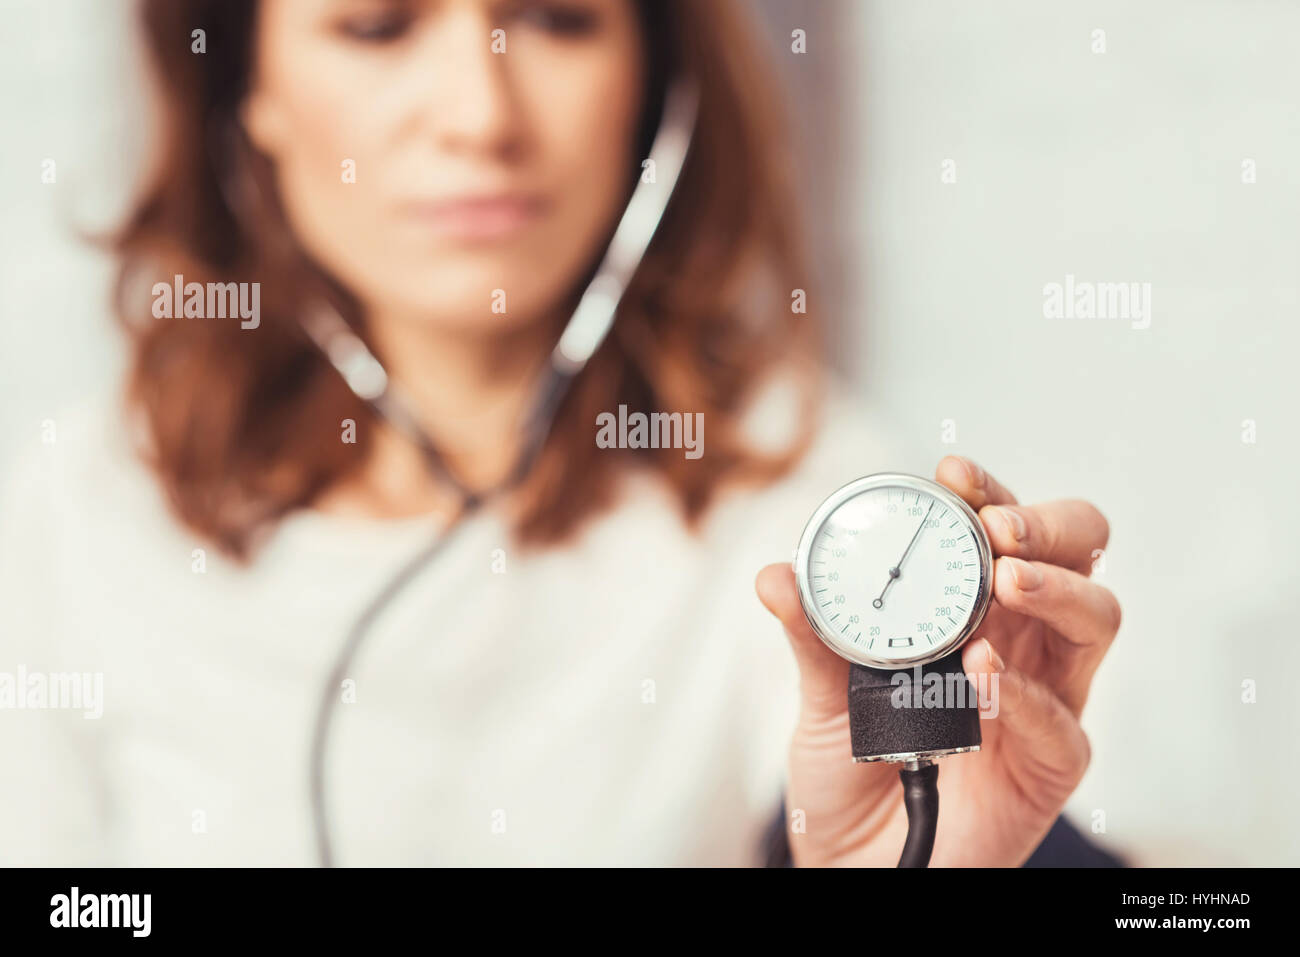 Serious young woman demonstrating blood pressure index at home - Stock Image